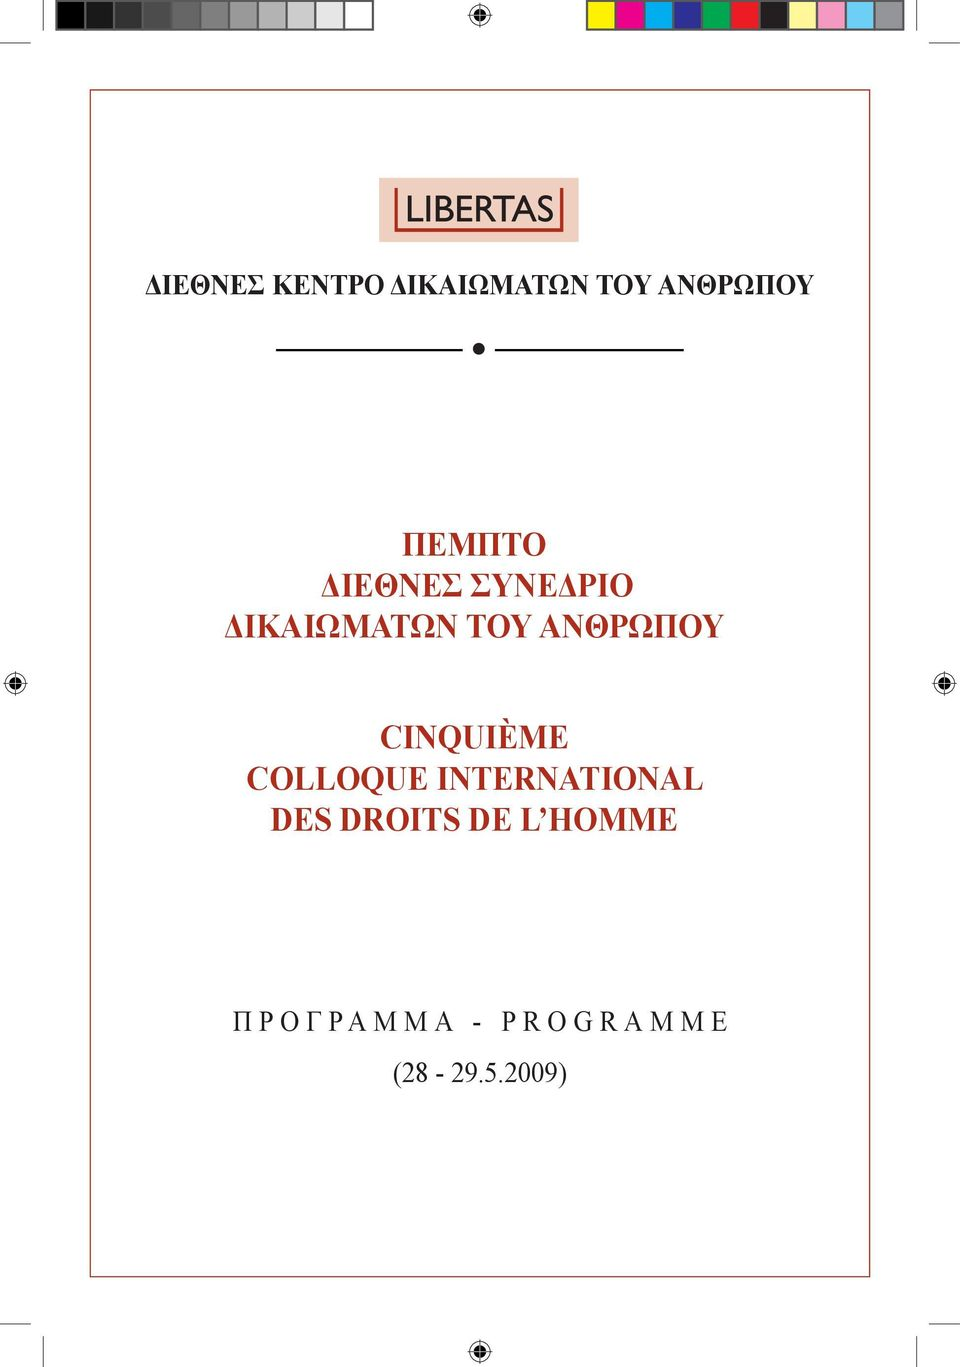 ΑΝΘΡΩΠΟΥ CINQUIÈME COLLOQUE INTERNATIONAL